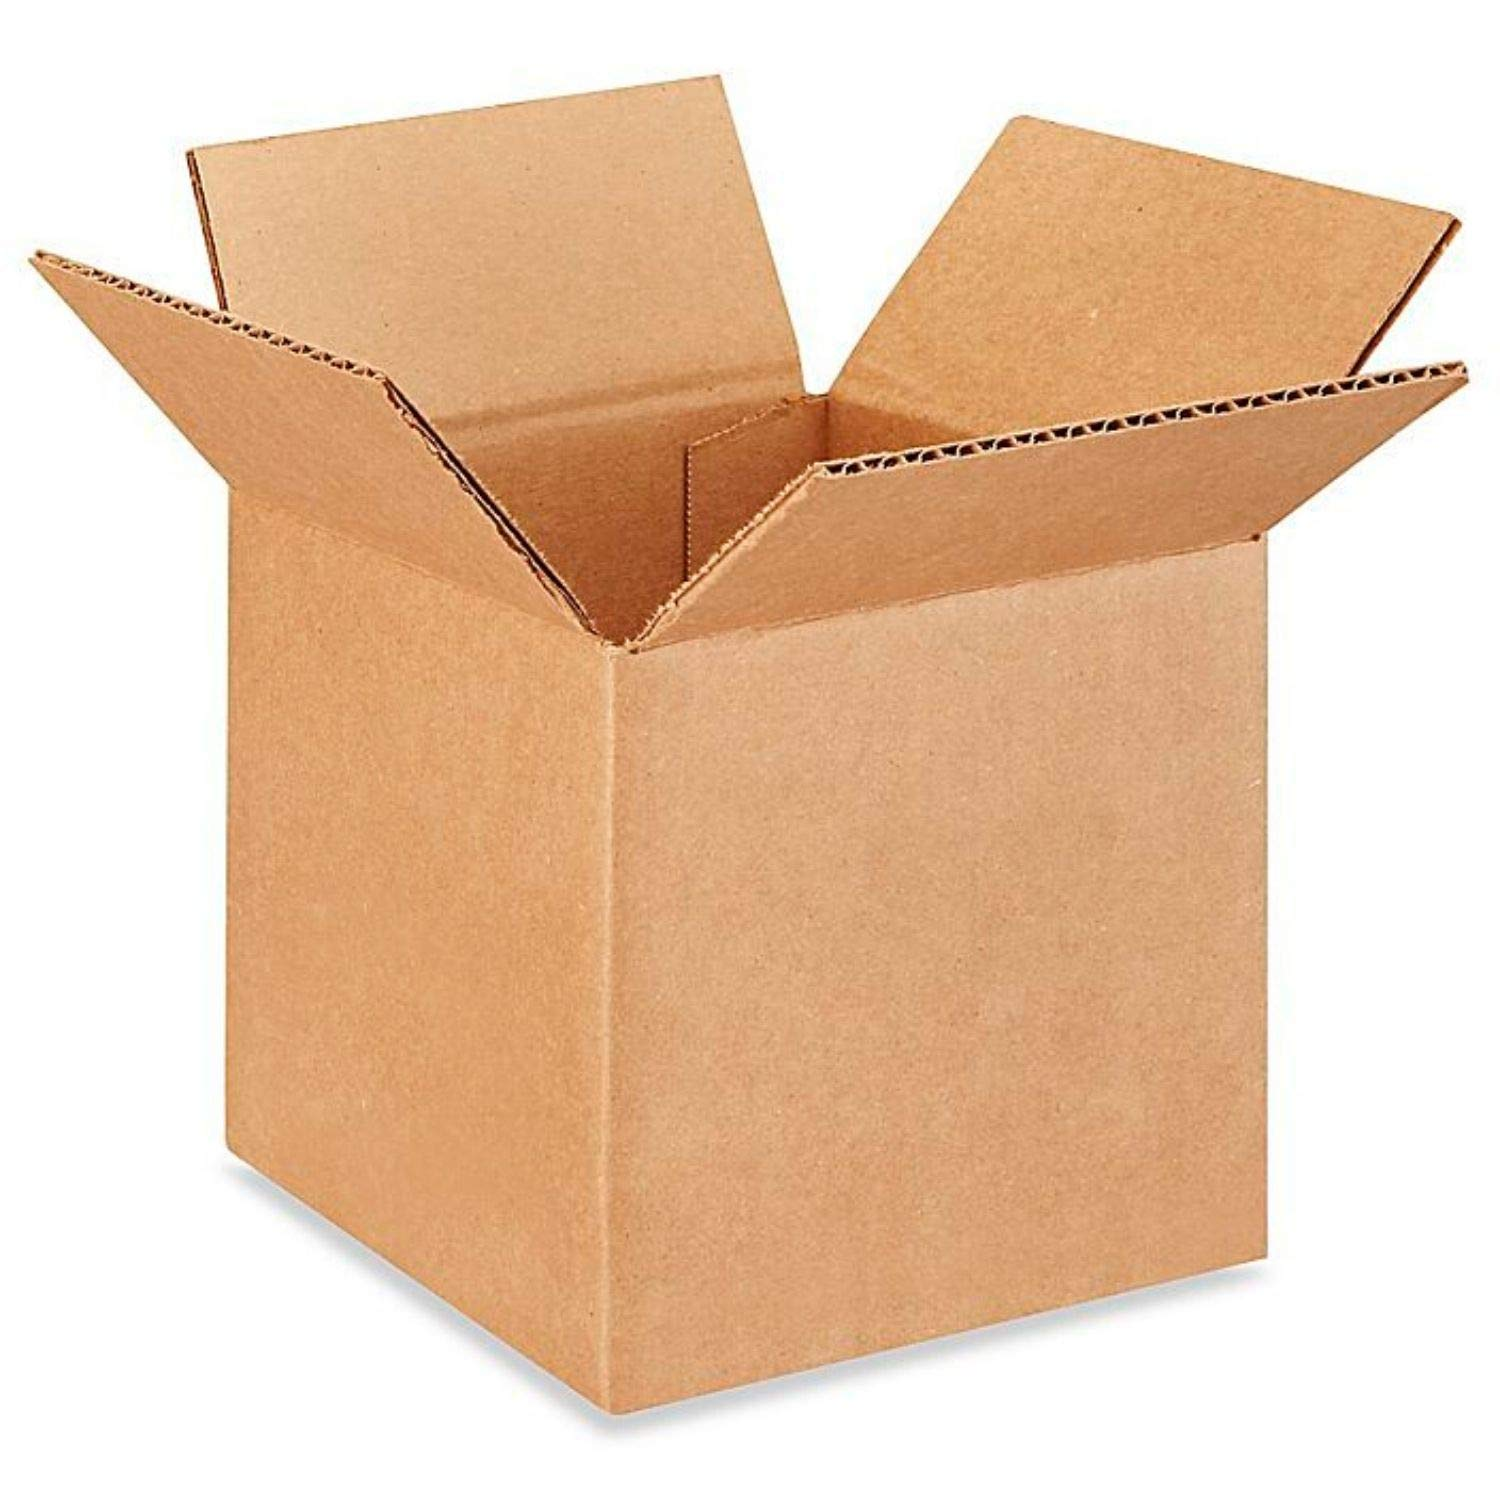 IDL Packaging Cube Corrugated Shipping Boxes 6